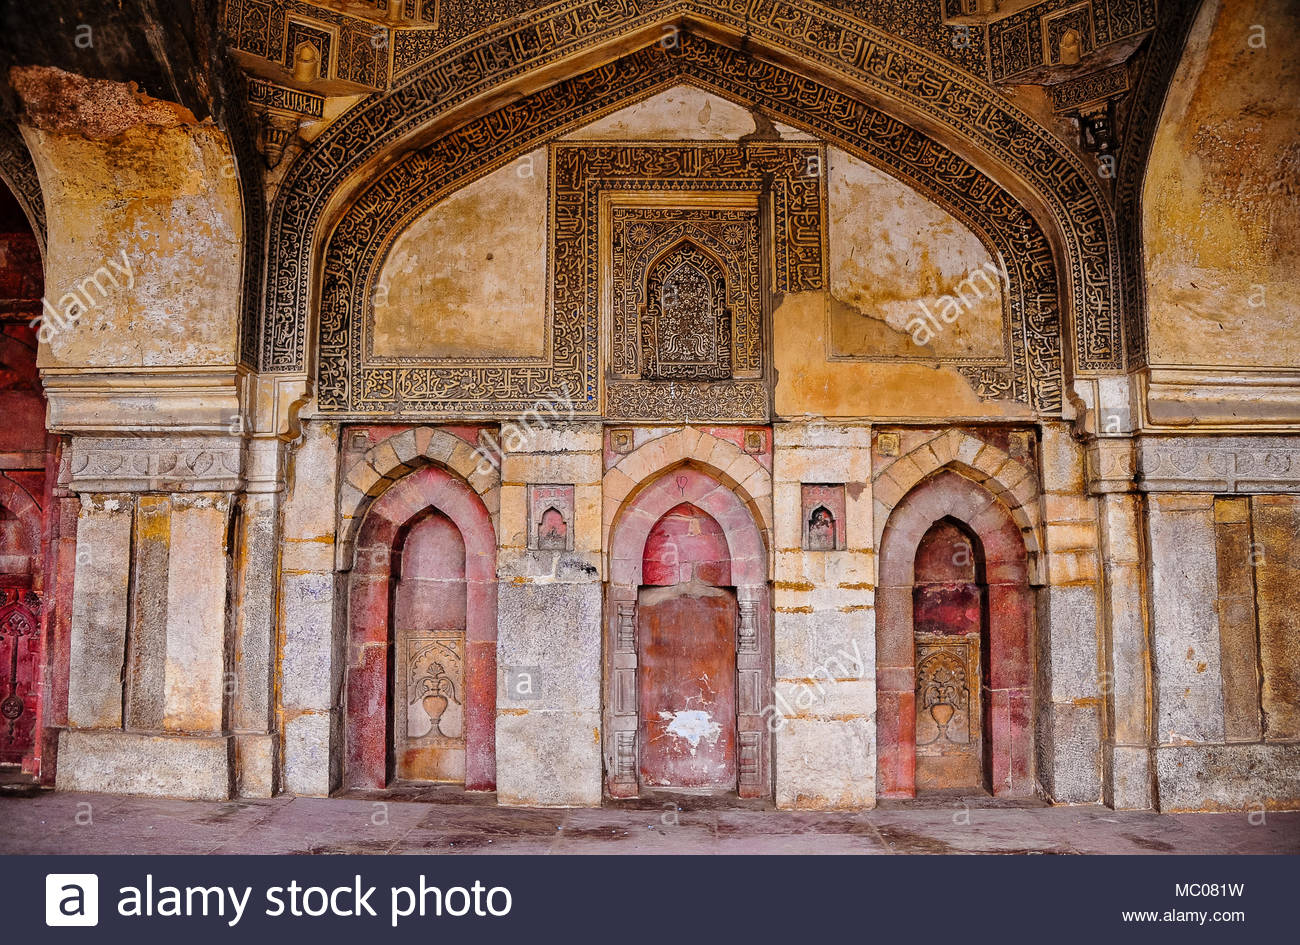 What Is A Mosque Detail: Mihrab Wall Stock Photos & Mihrab Wall Stock Images